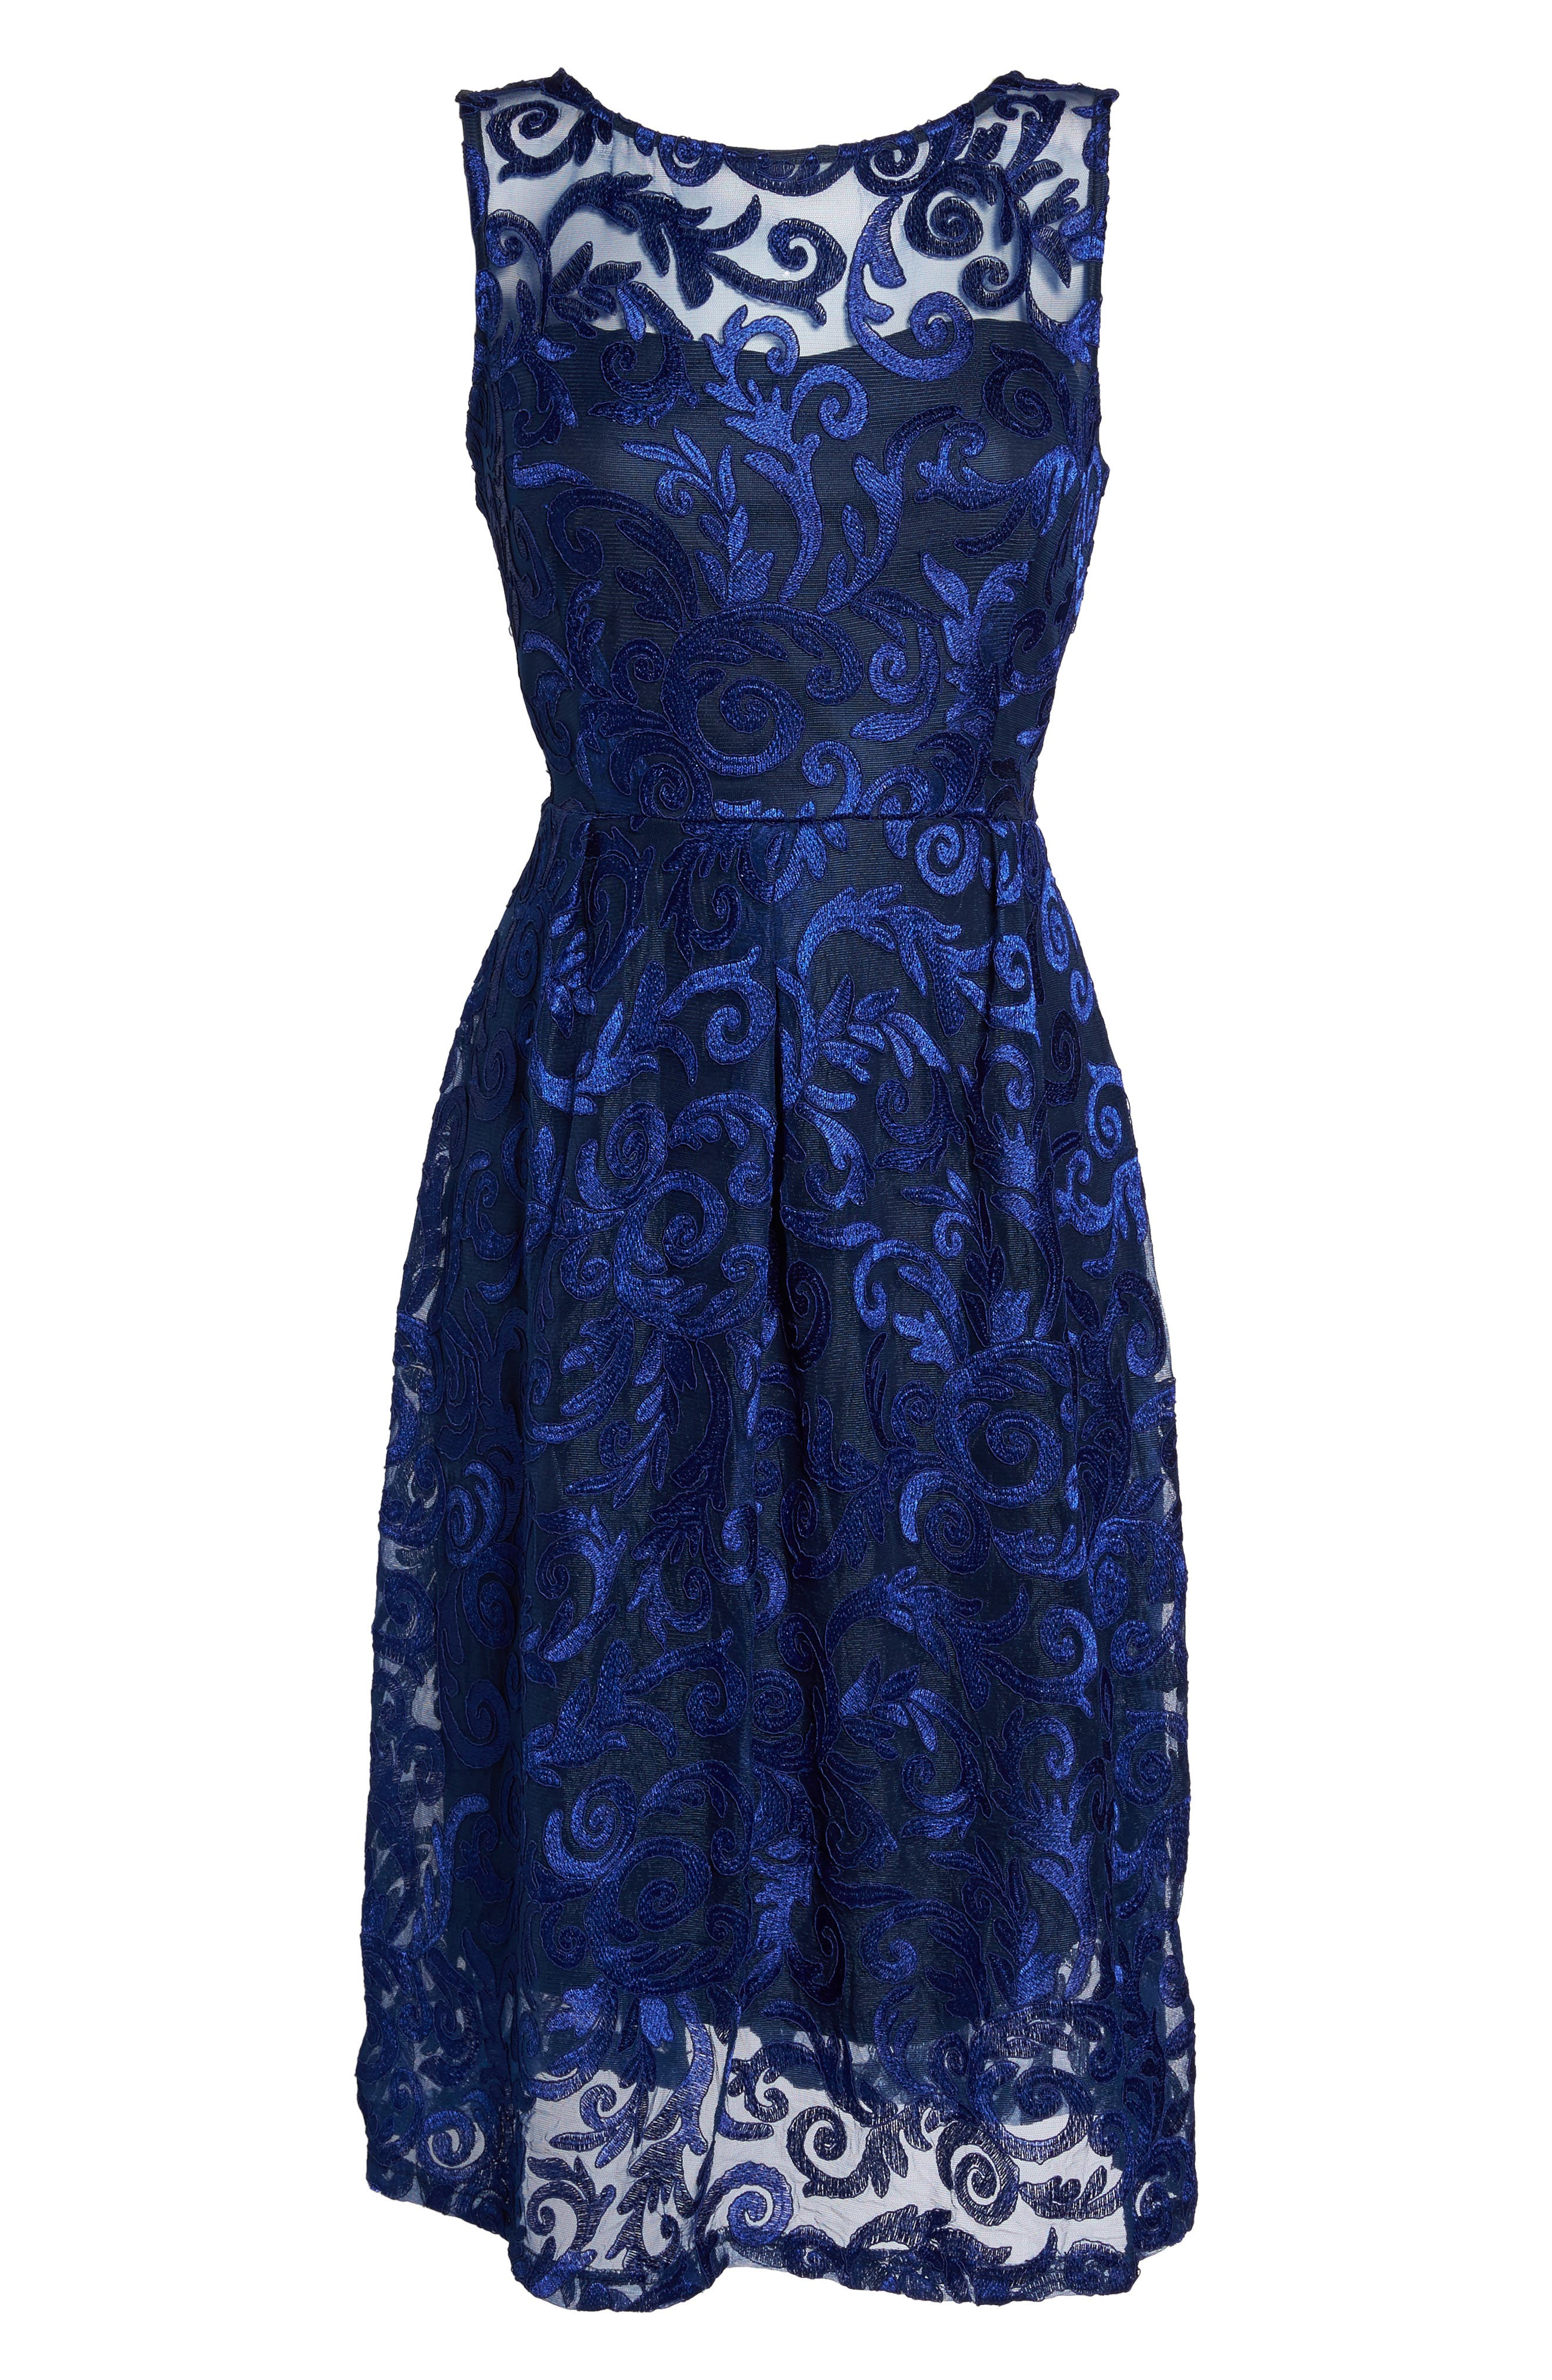 Floral Scroll Embroidered Cocktail Dress,                             Alternate thumbnail 6, color,                             430